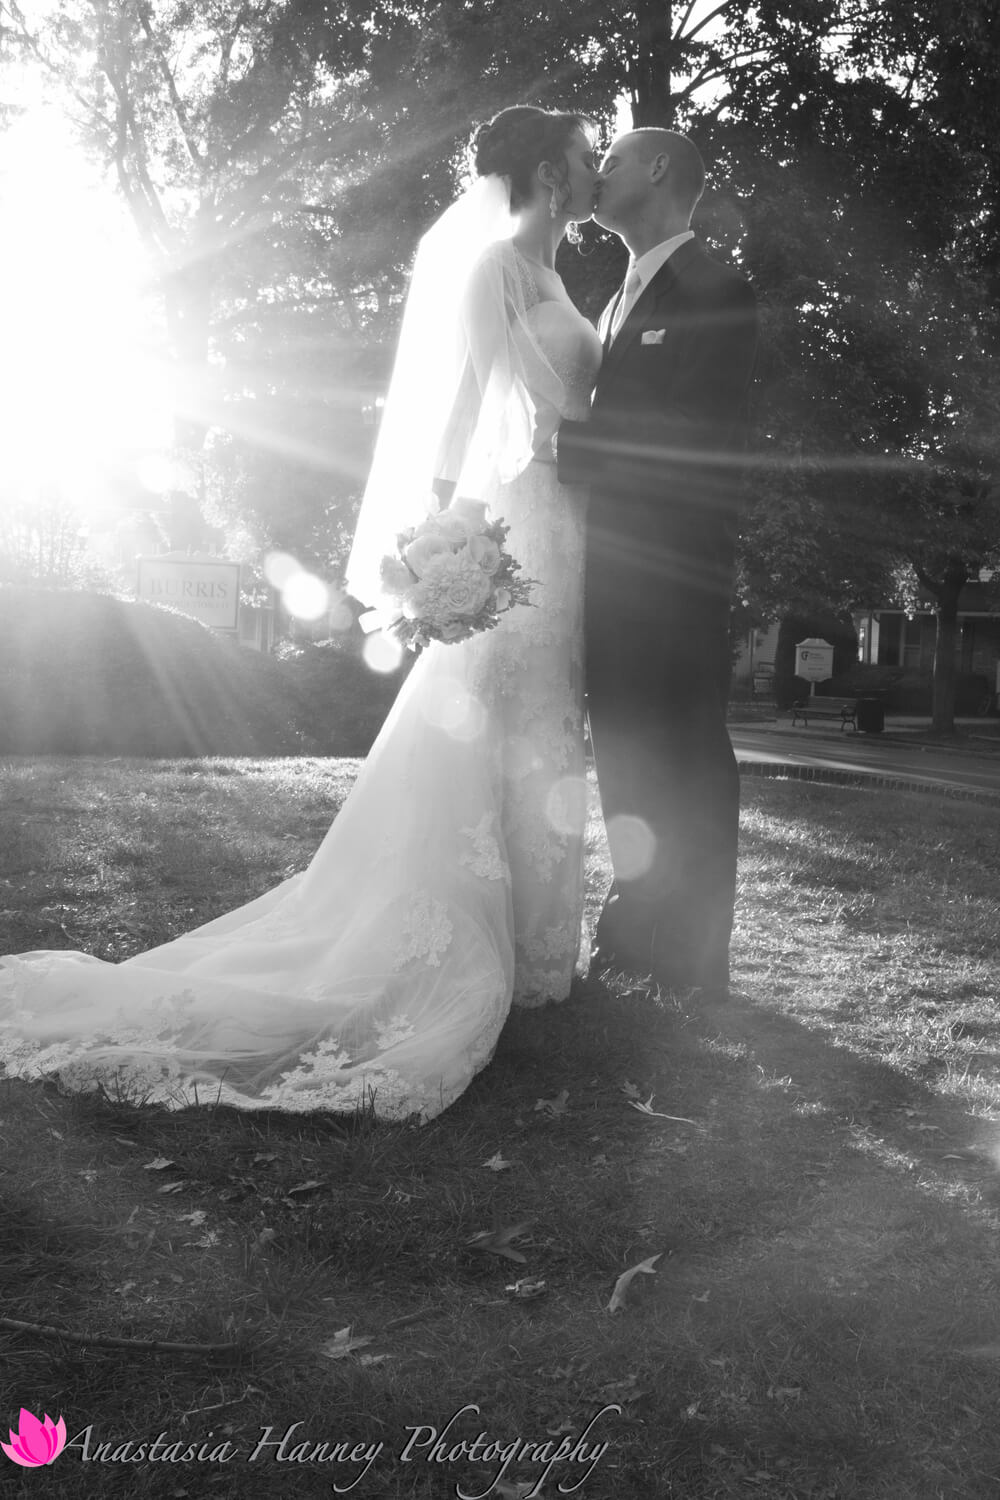 Wedding Photography of Bride and Groom in Sun Flare at Moorestown Community House in Moorestown New Jersey by Anastasia Hanney Photography AHanneyPhoto